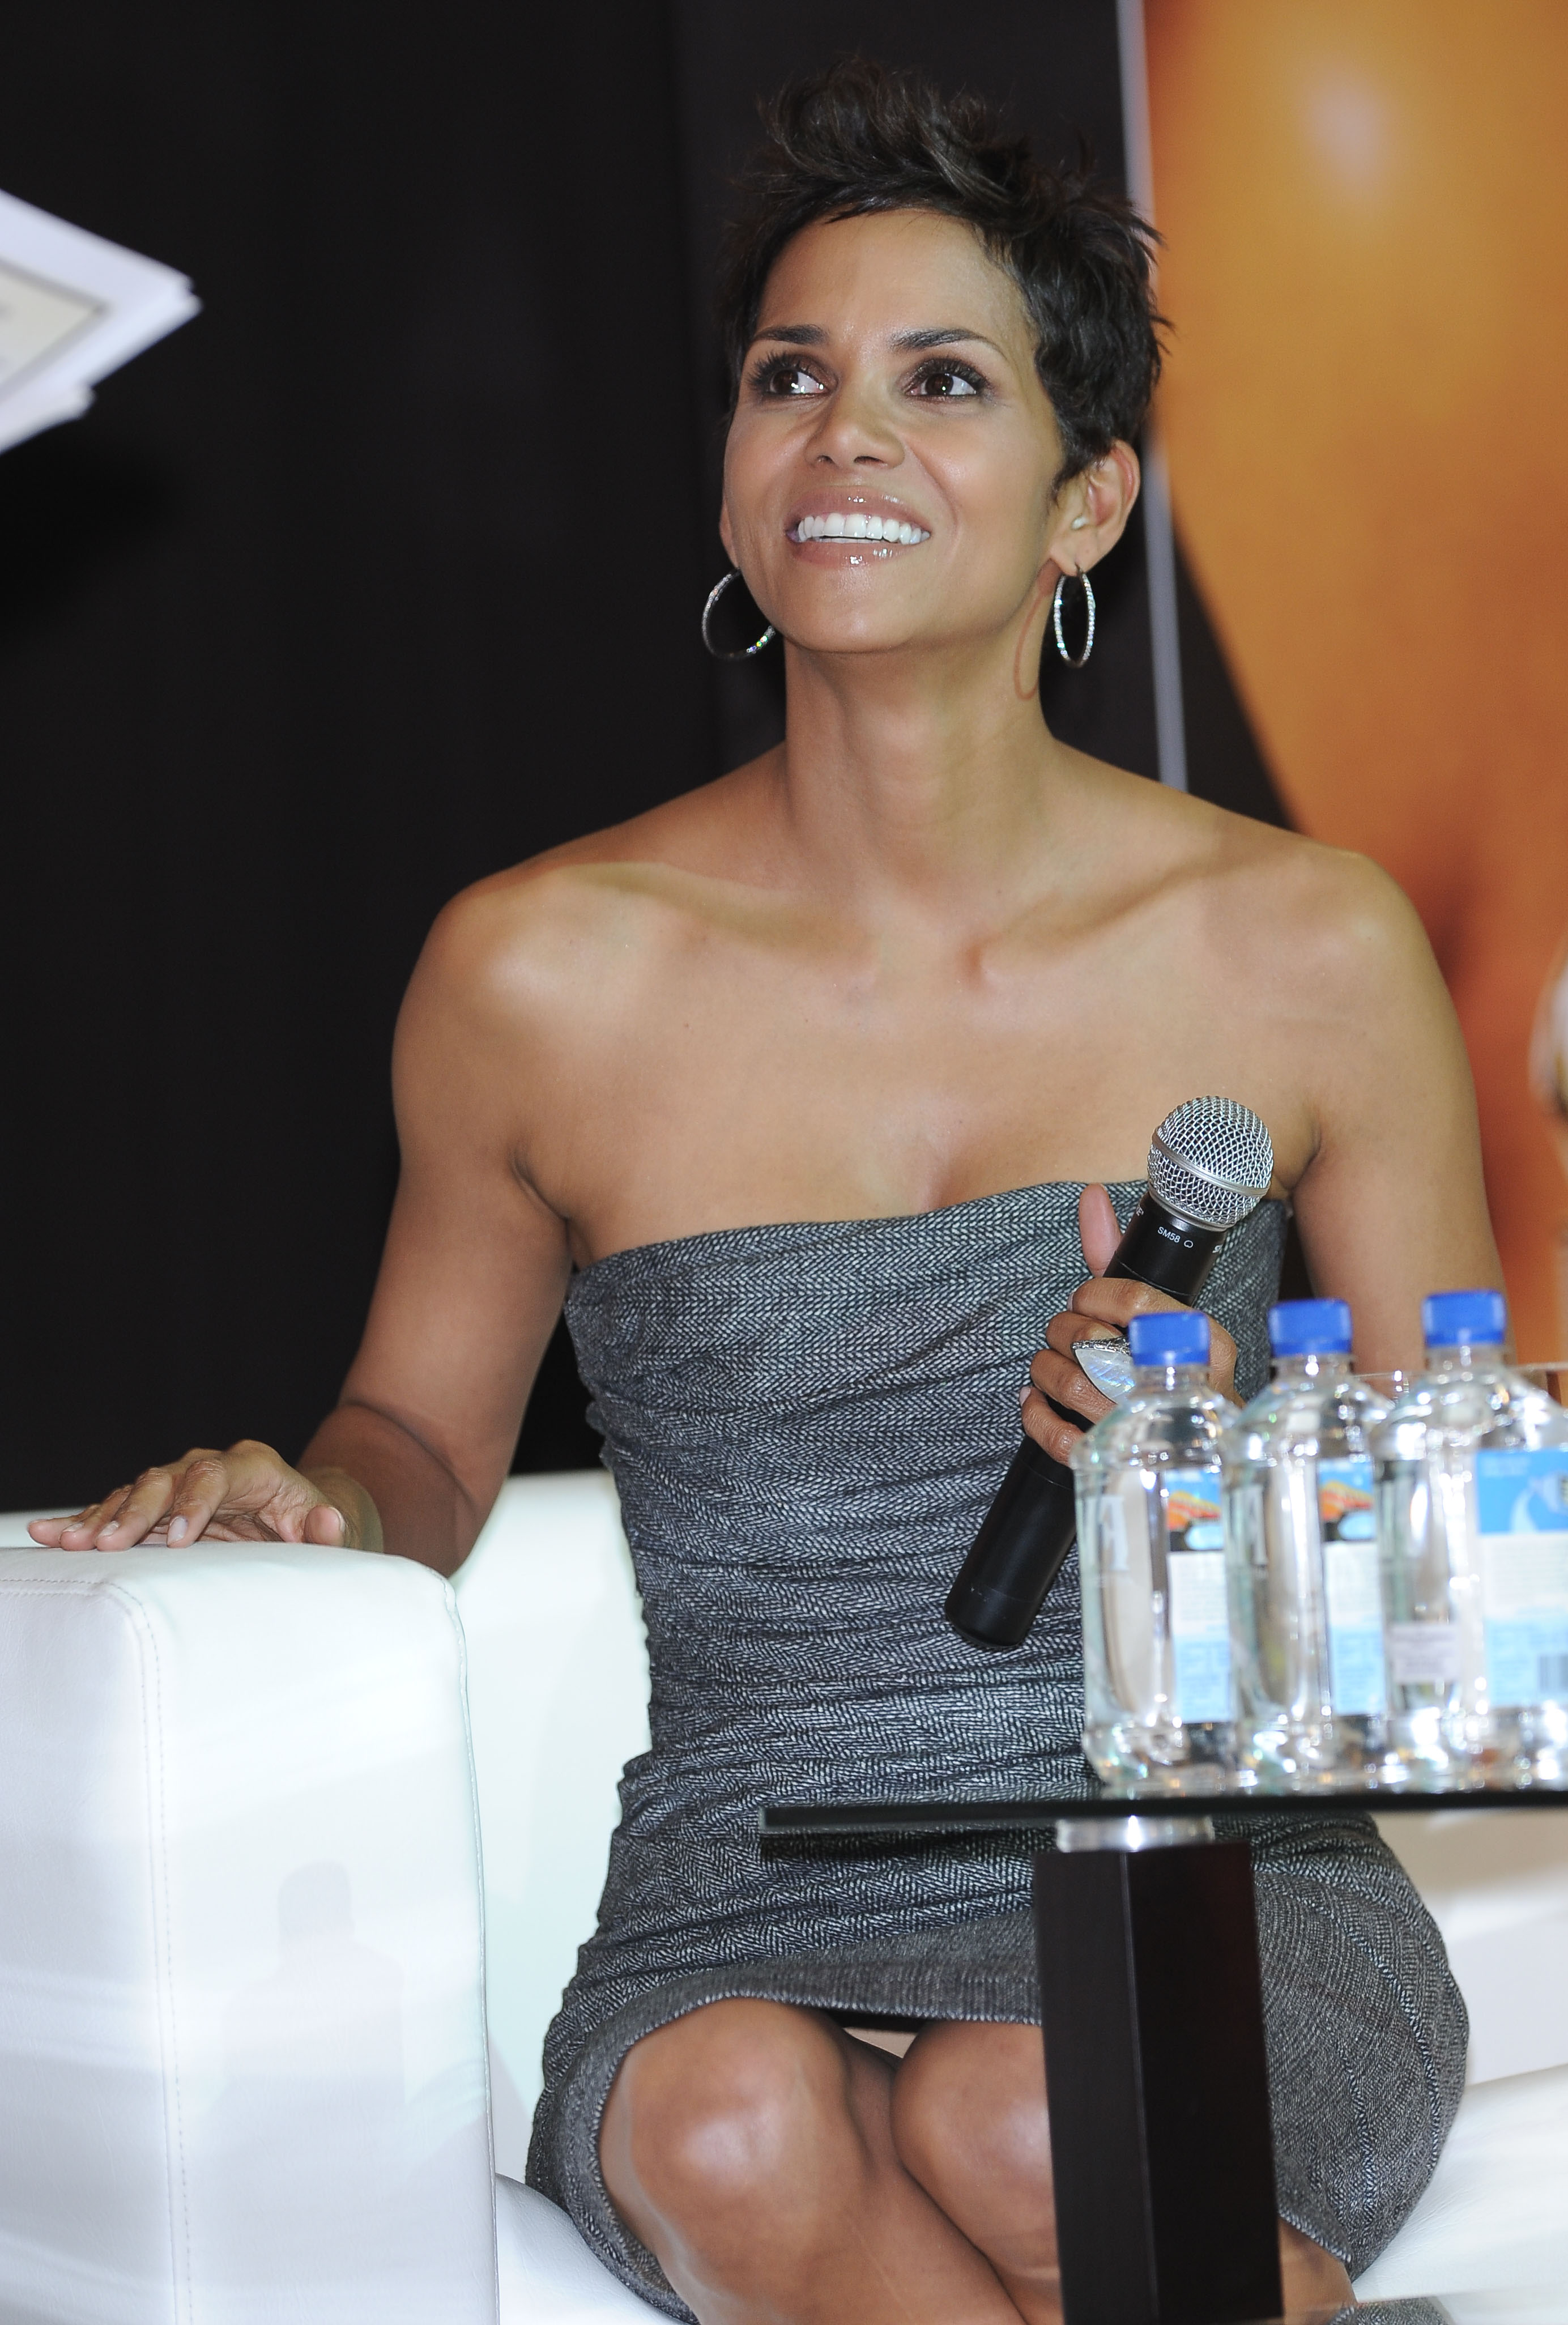 Halle Berry Promoting Her Reveal Parfume In Poland -9244